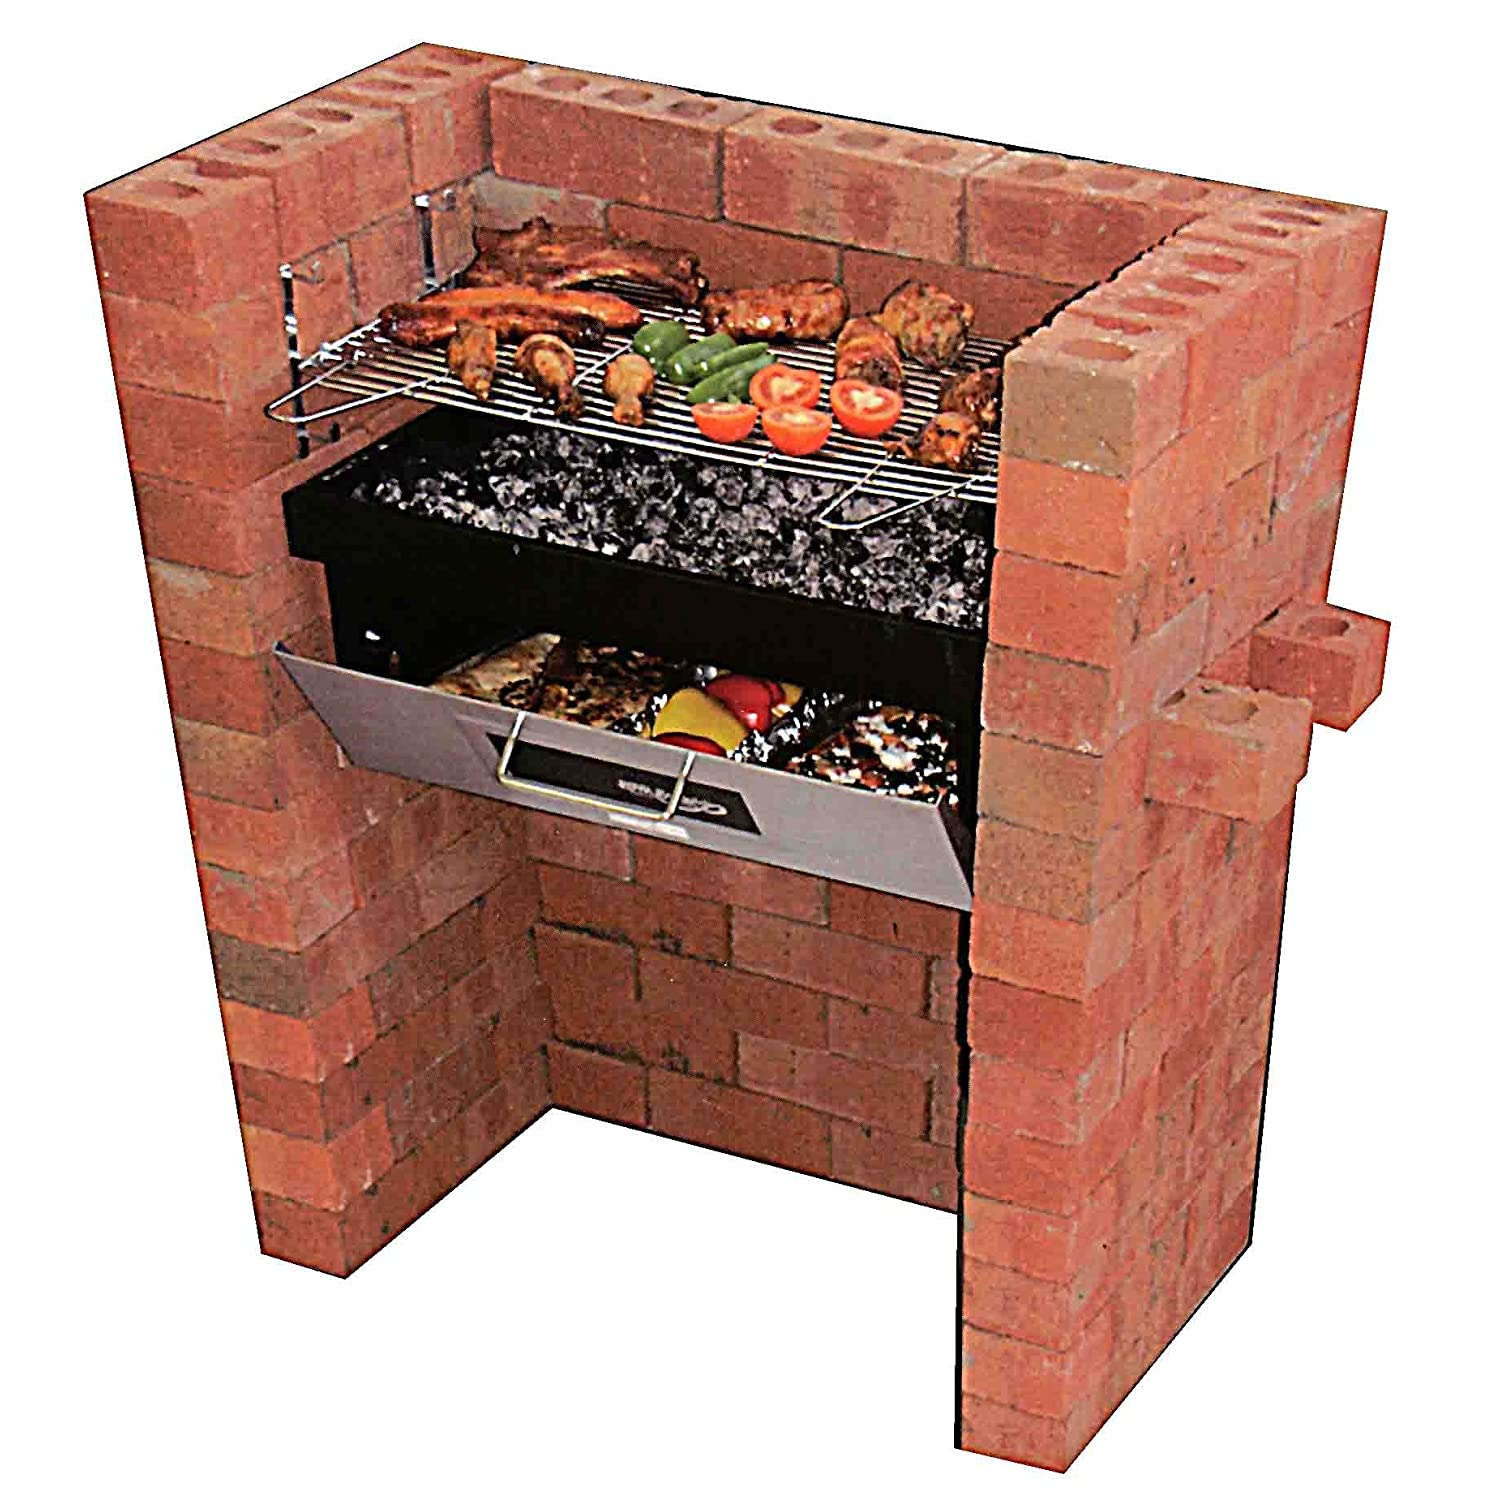 Brick Grills And Outdoor Countertops Building Your: New Garden Build Built In Brick Barbecue BBQ Grill & Pizza